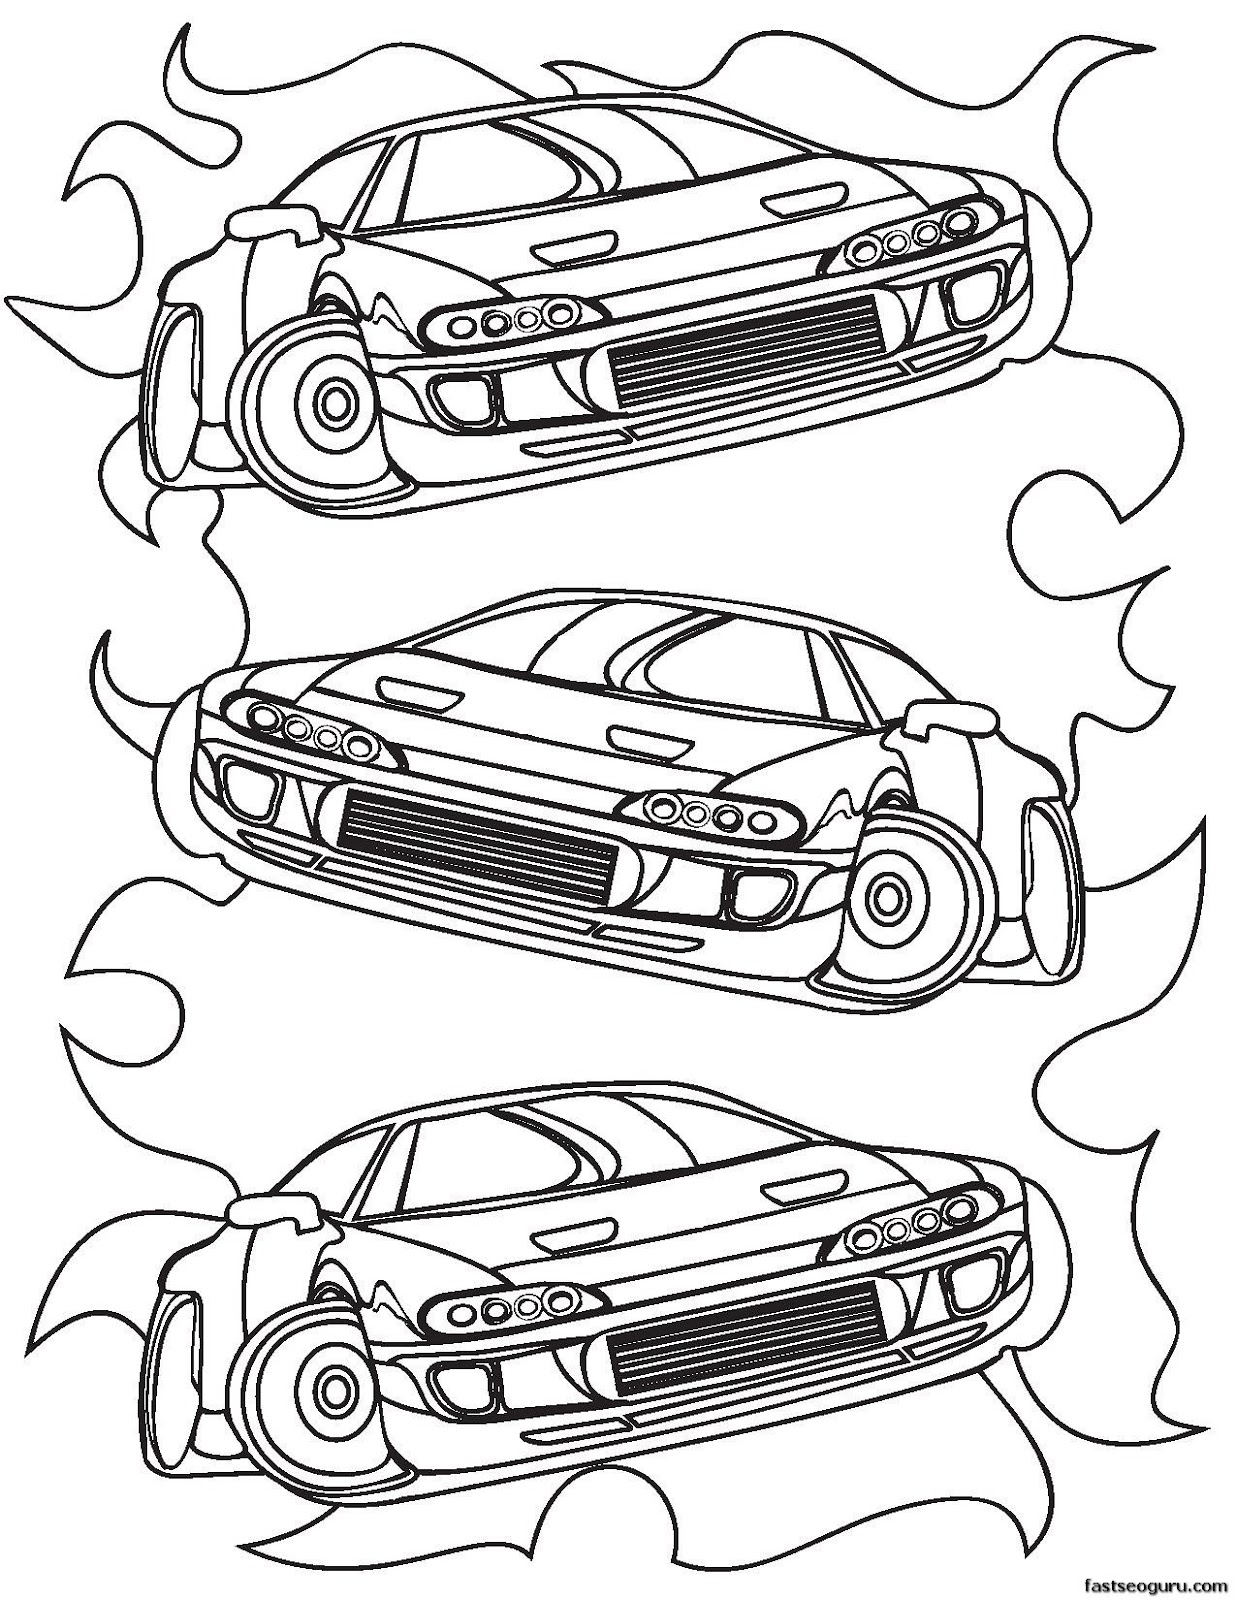 Top Race Cars Coloring Pages For Boys Images